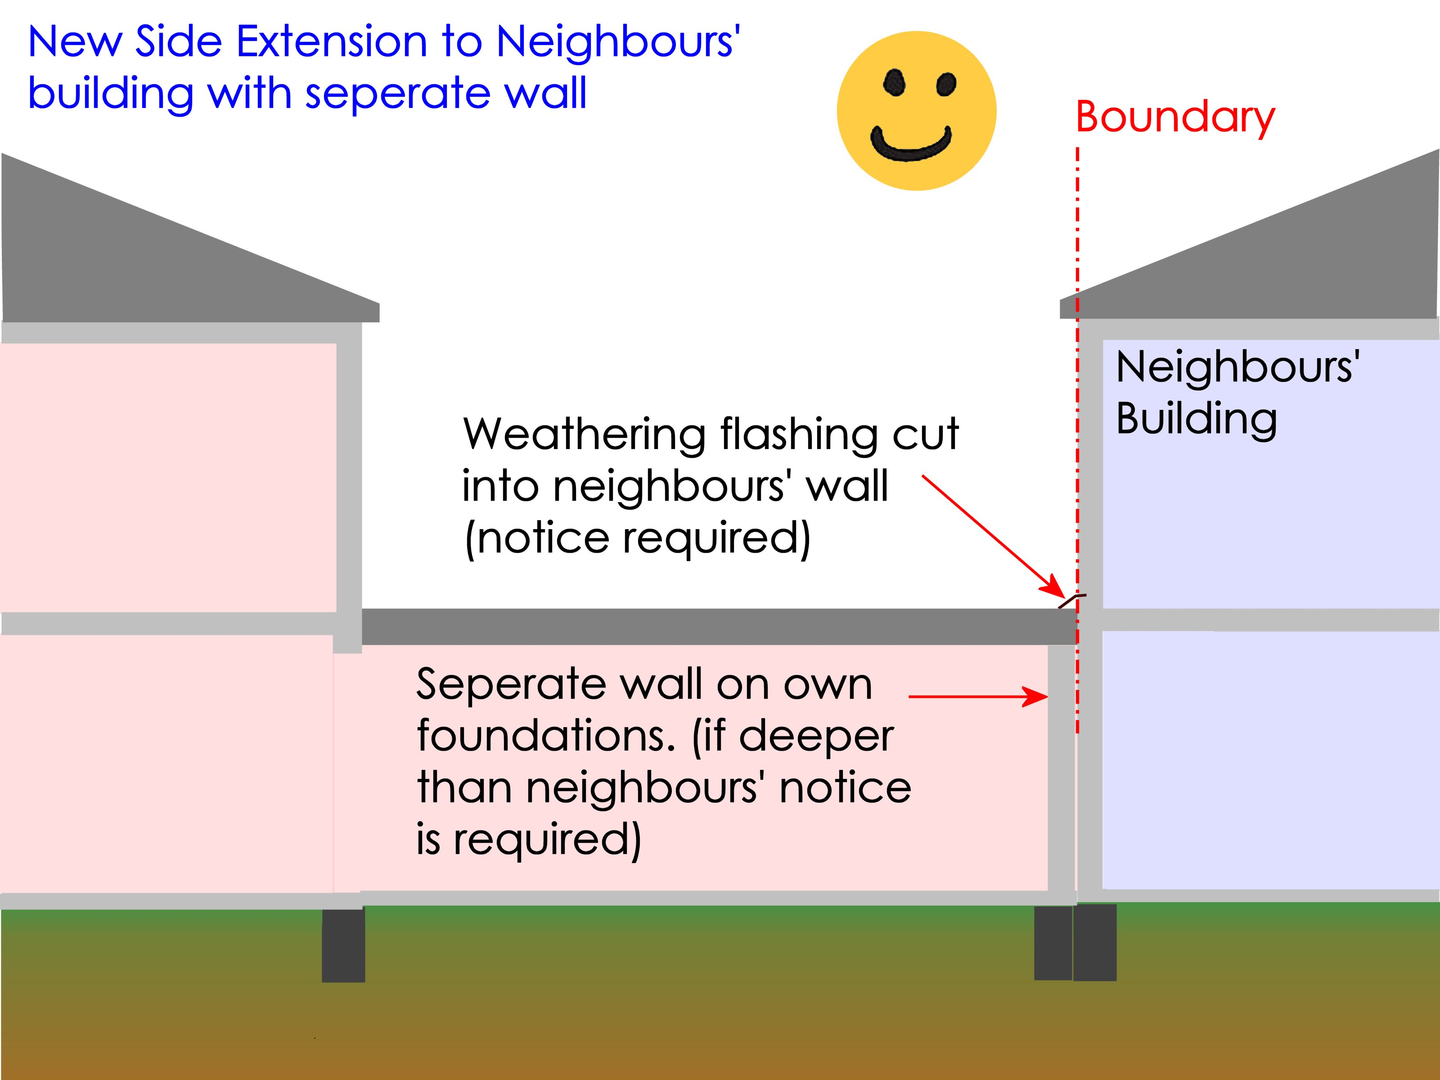 London party wall surveyors enclosing upon a neighbours wall turns the wall into a party wall and requires the neighbours agreement platinumwayz